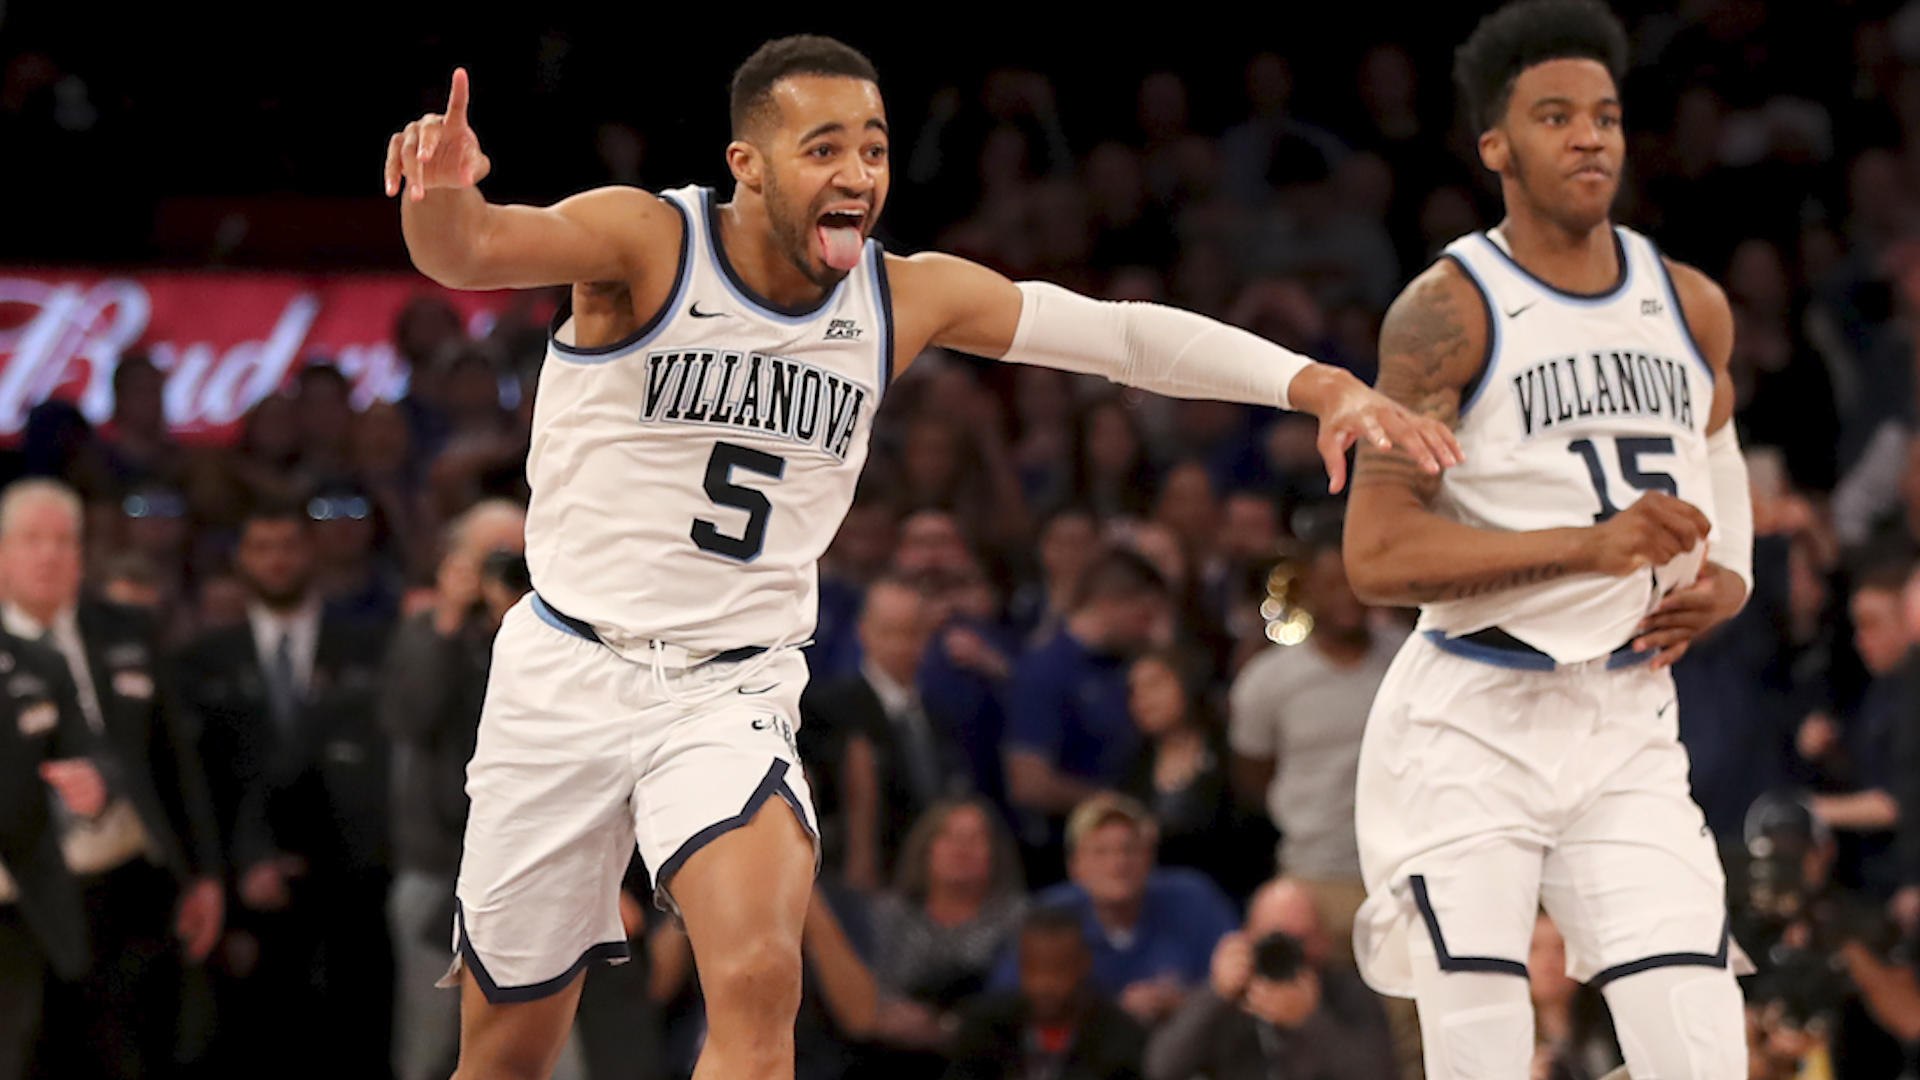 2019 NCAA Tournament bracket South Regional: March Madness predictions, upsets, players to watch